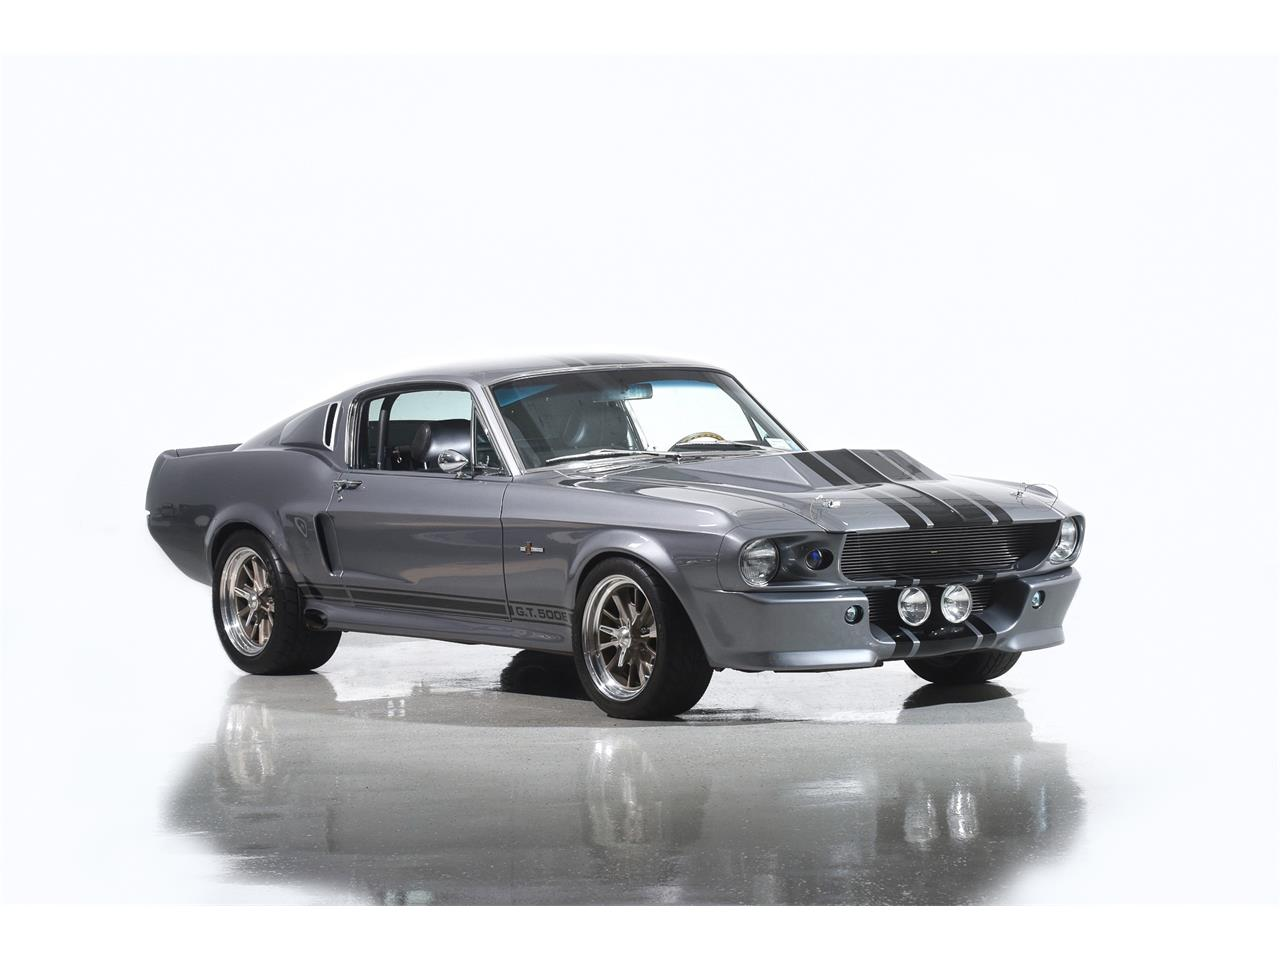 Large picture of 67 mustang shelby gt500 mbpd